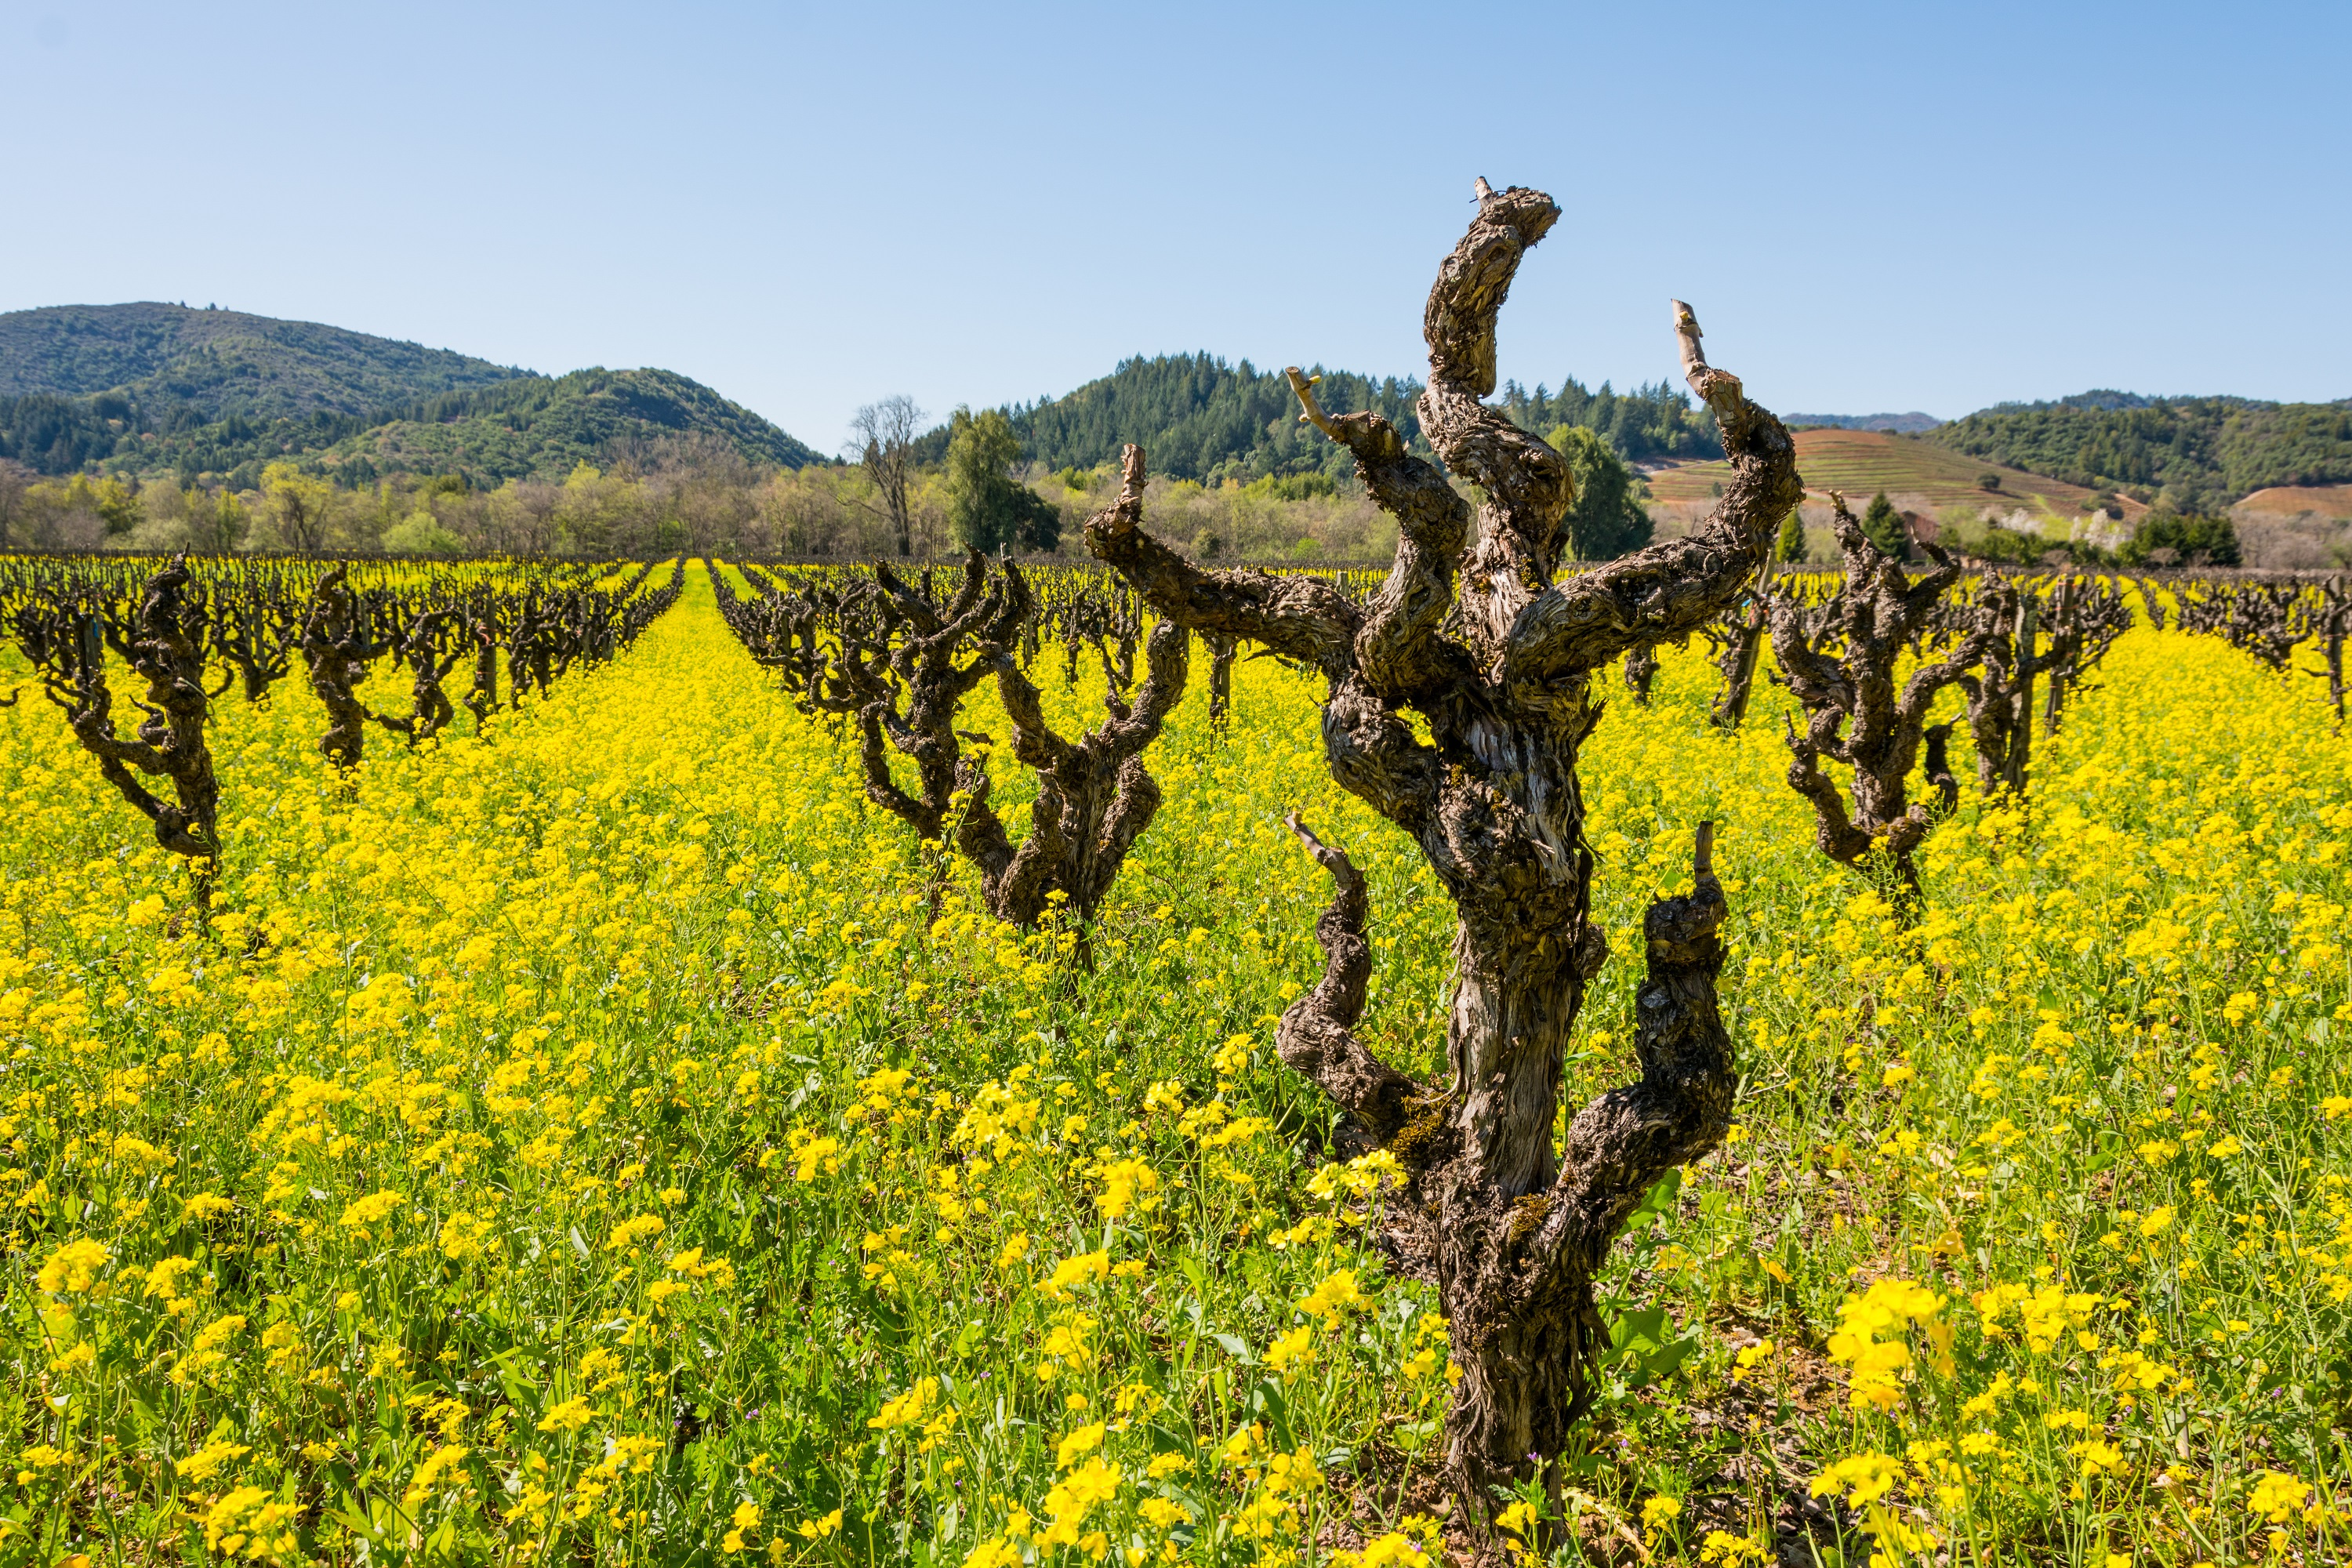 Early Spring Vineyard with Mustard in Full Bloom, Sonoma County, California, USA